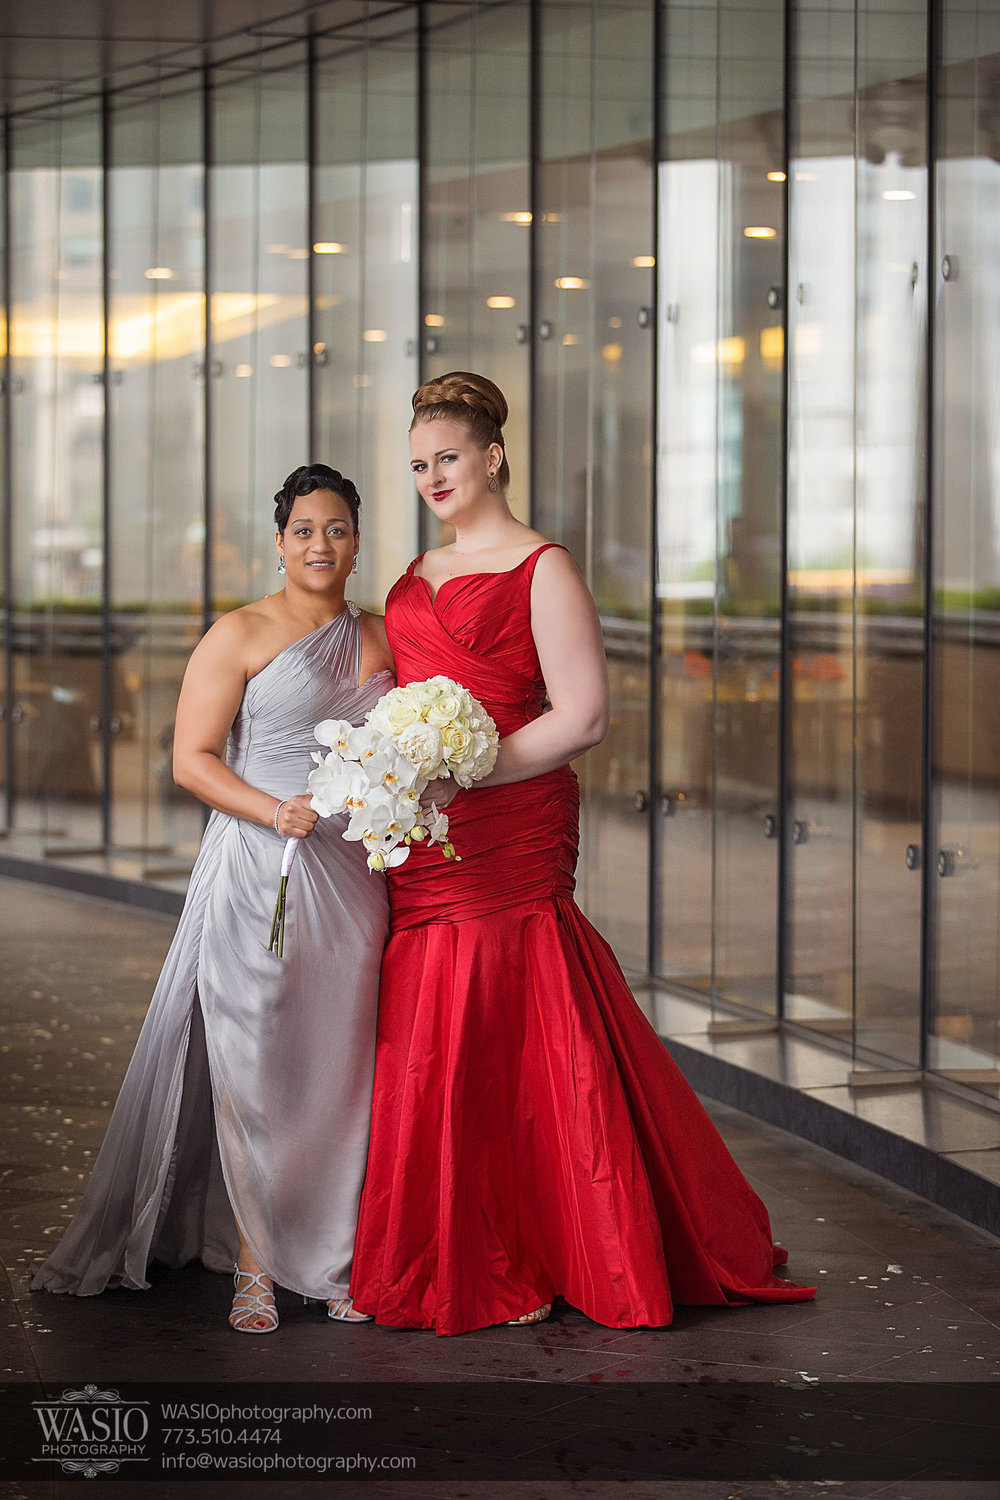 See Olivia and Givonna's red carpet worthy silver and red wedding gowns.  Thanks to Olivia and Givonna and  Wasio Photography  for allowing us to share these images.